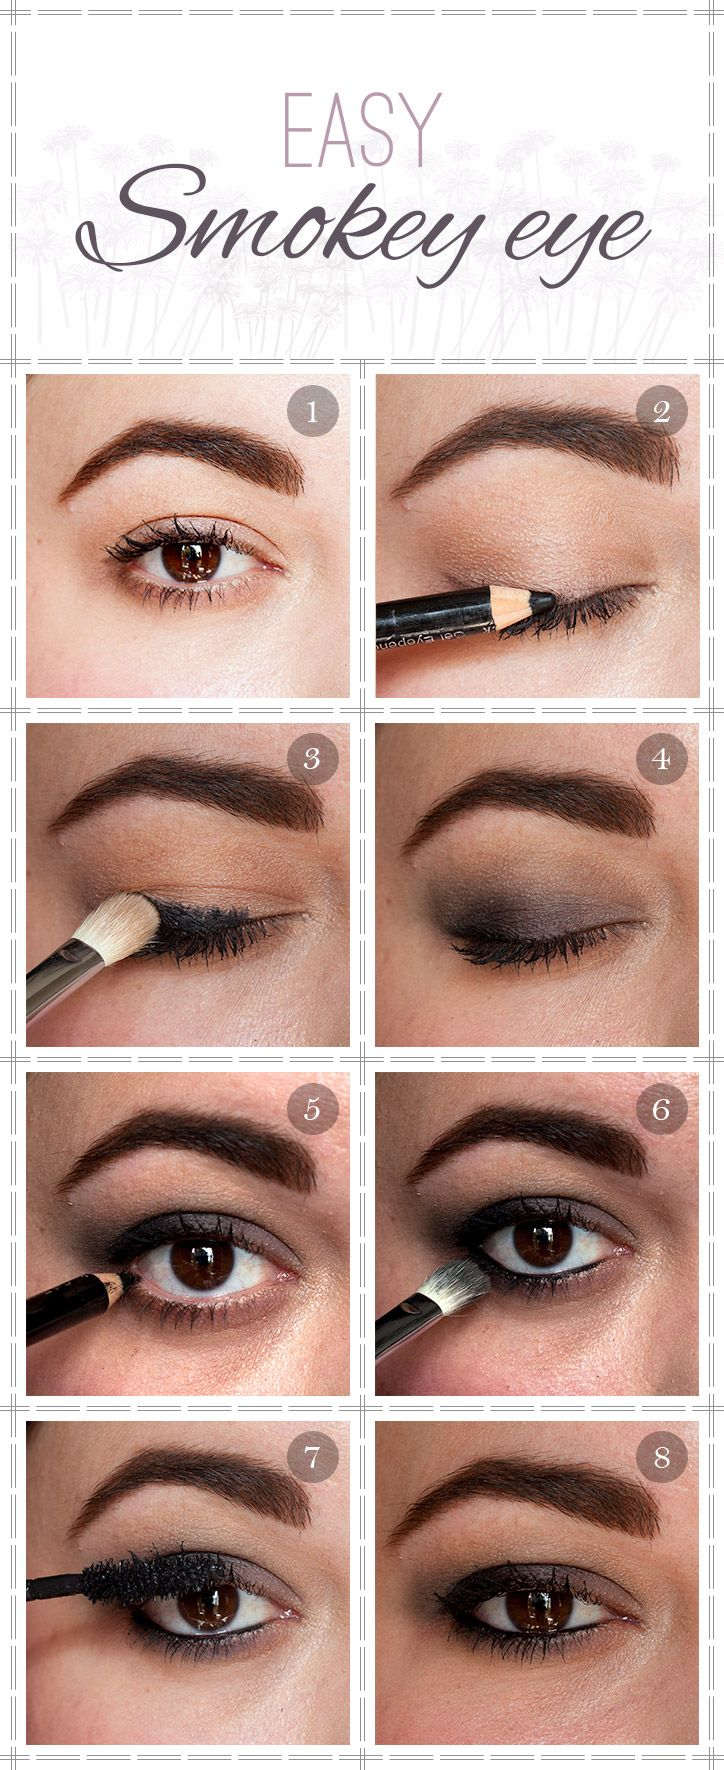 easy smokey eye tutorial | crafty 2 the core~diy galore | makeup